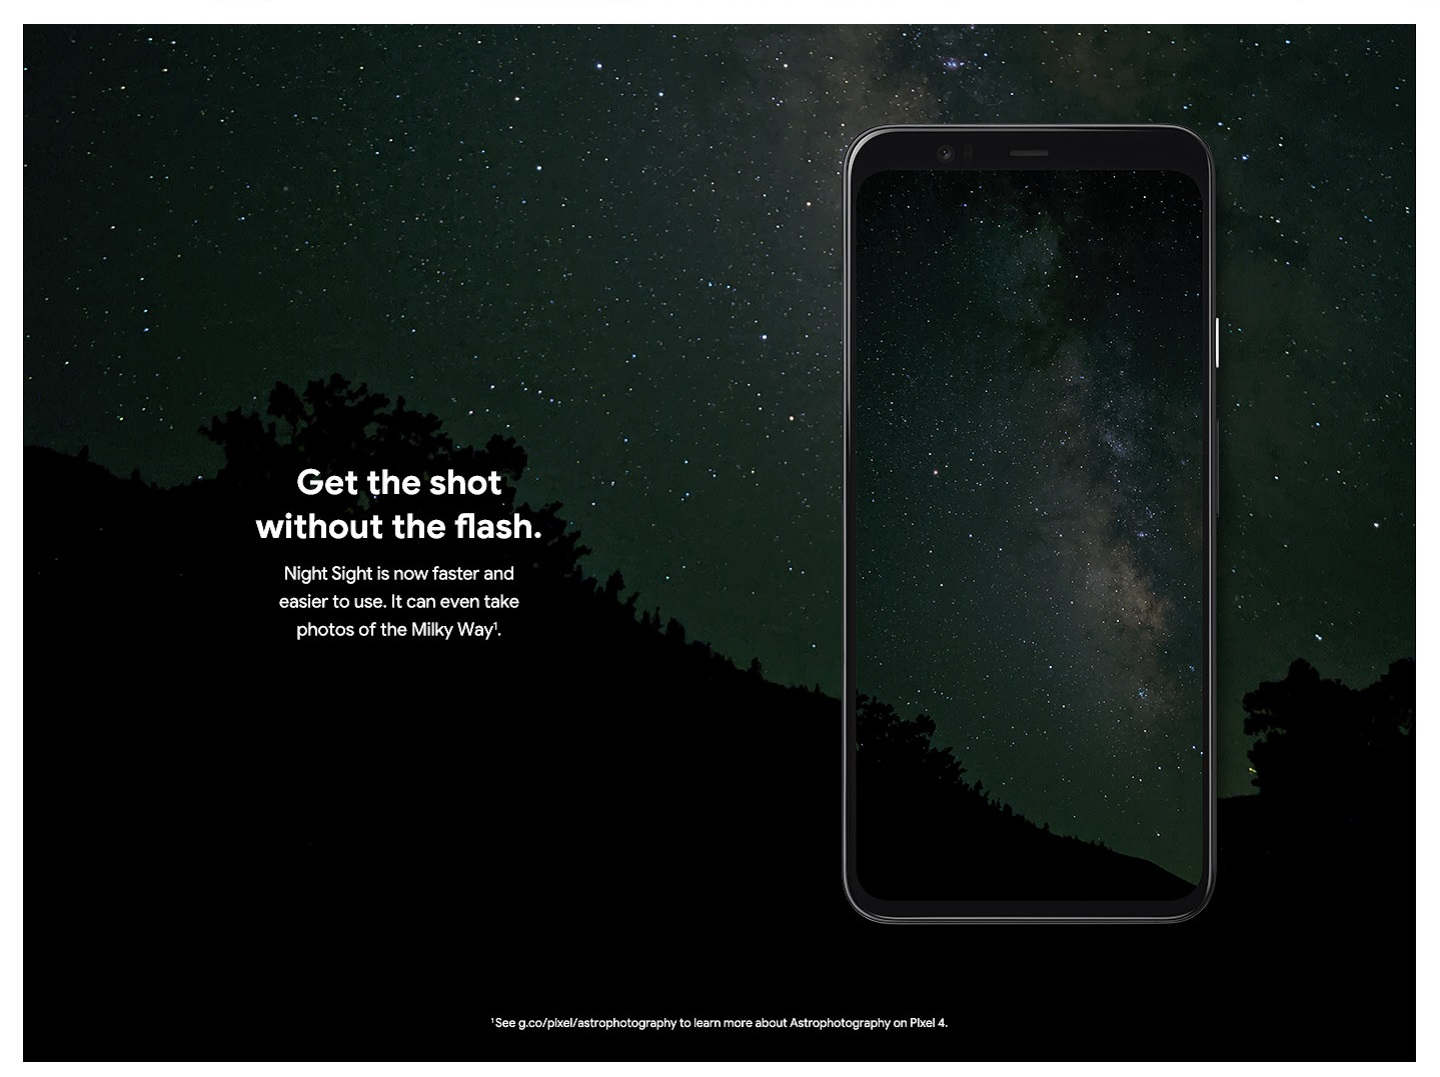 Google Night Sight – Get the shot without the flash